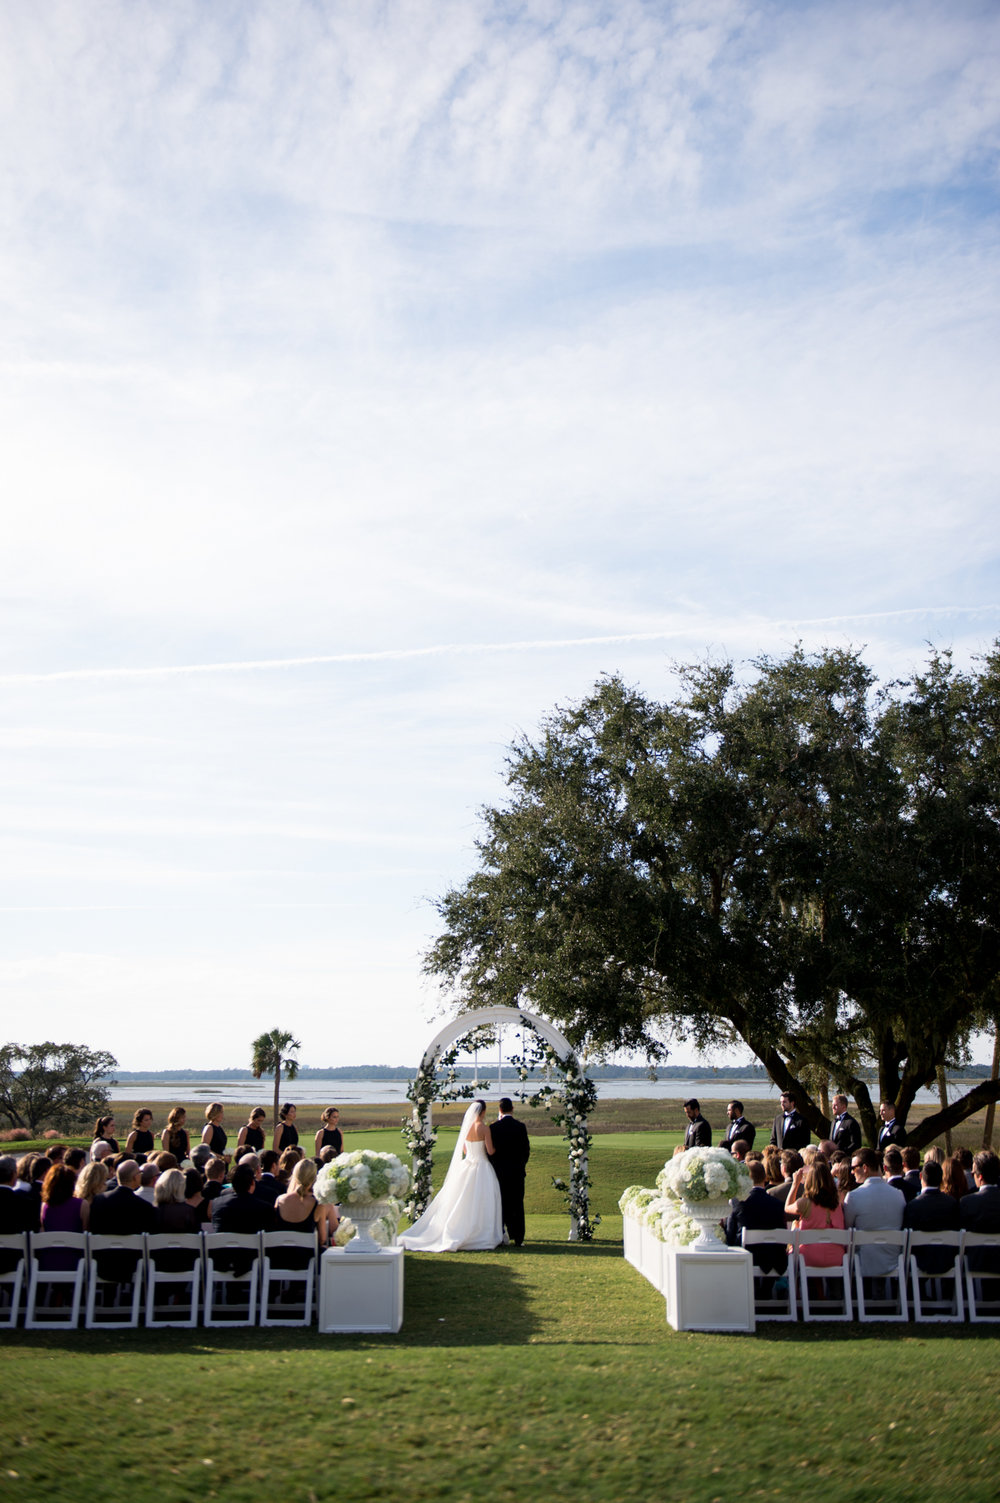 Southern wedding at Kiawah Island Golf Club